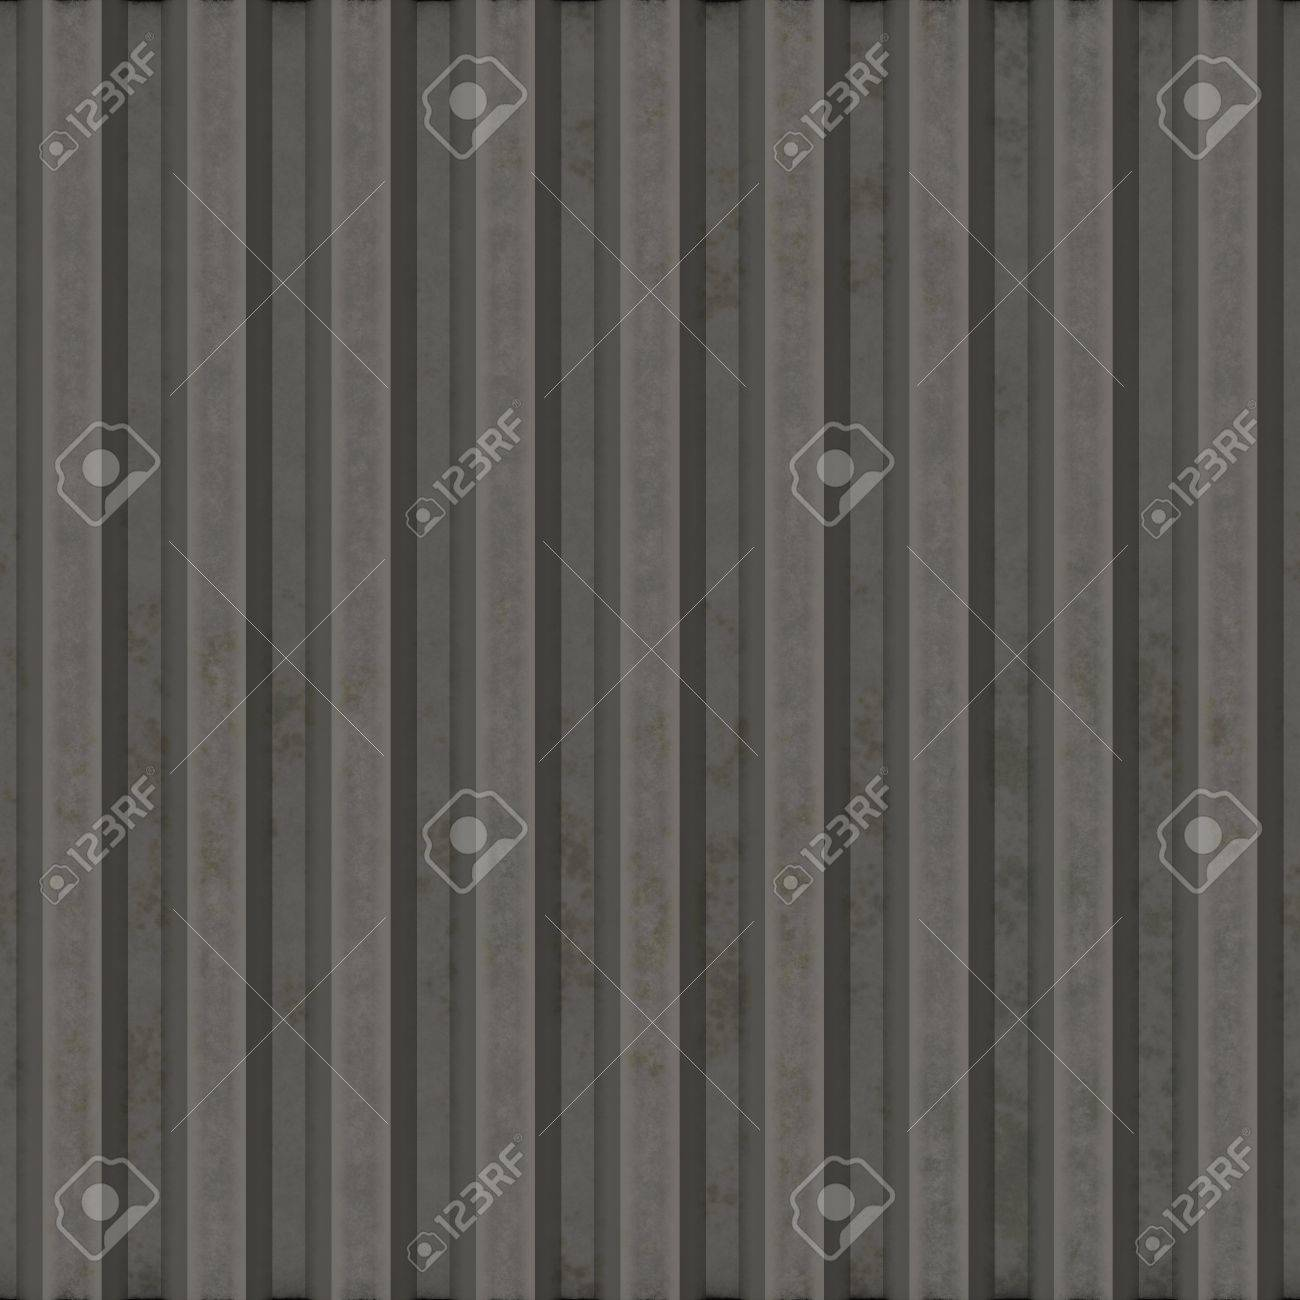 Corrugated metal surface with corrosion seamless texture Stock Photo    3964184. Corrugated Metal Surface With Corrosion Seamless Texture Stock